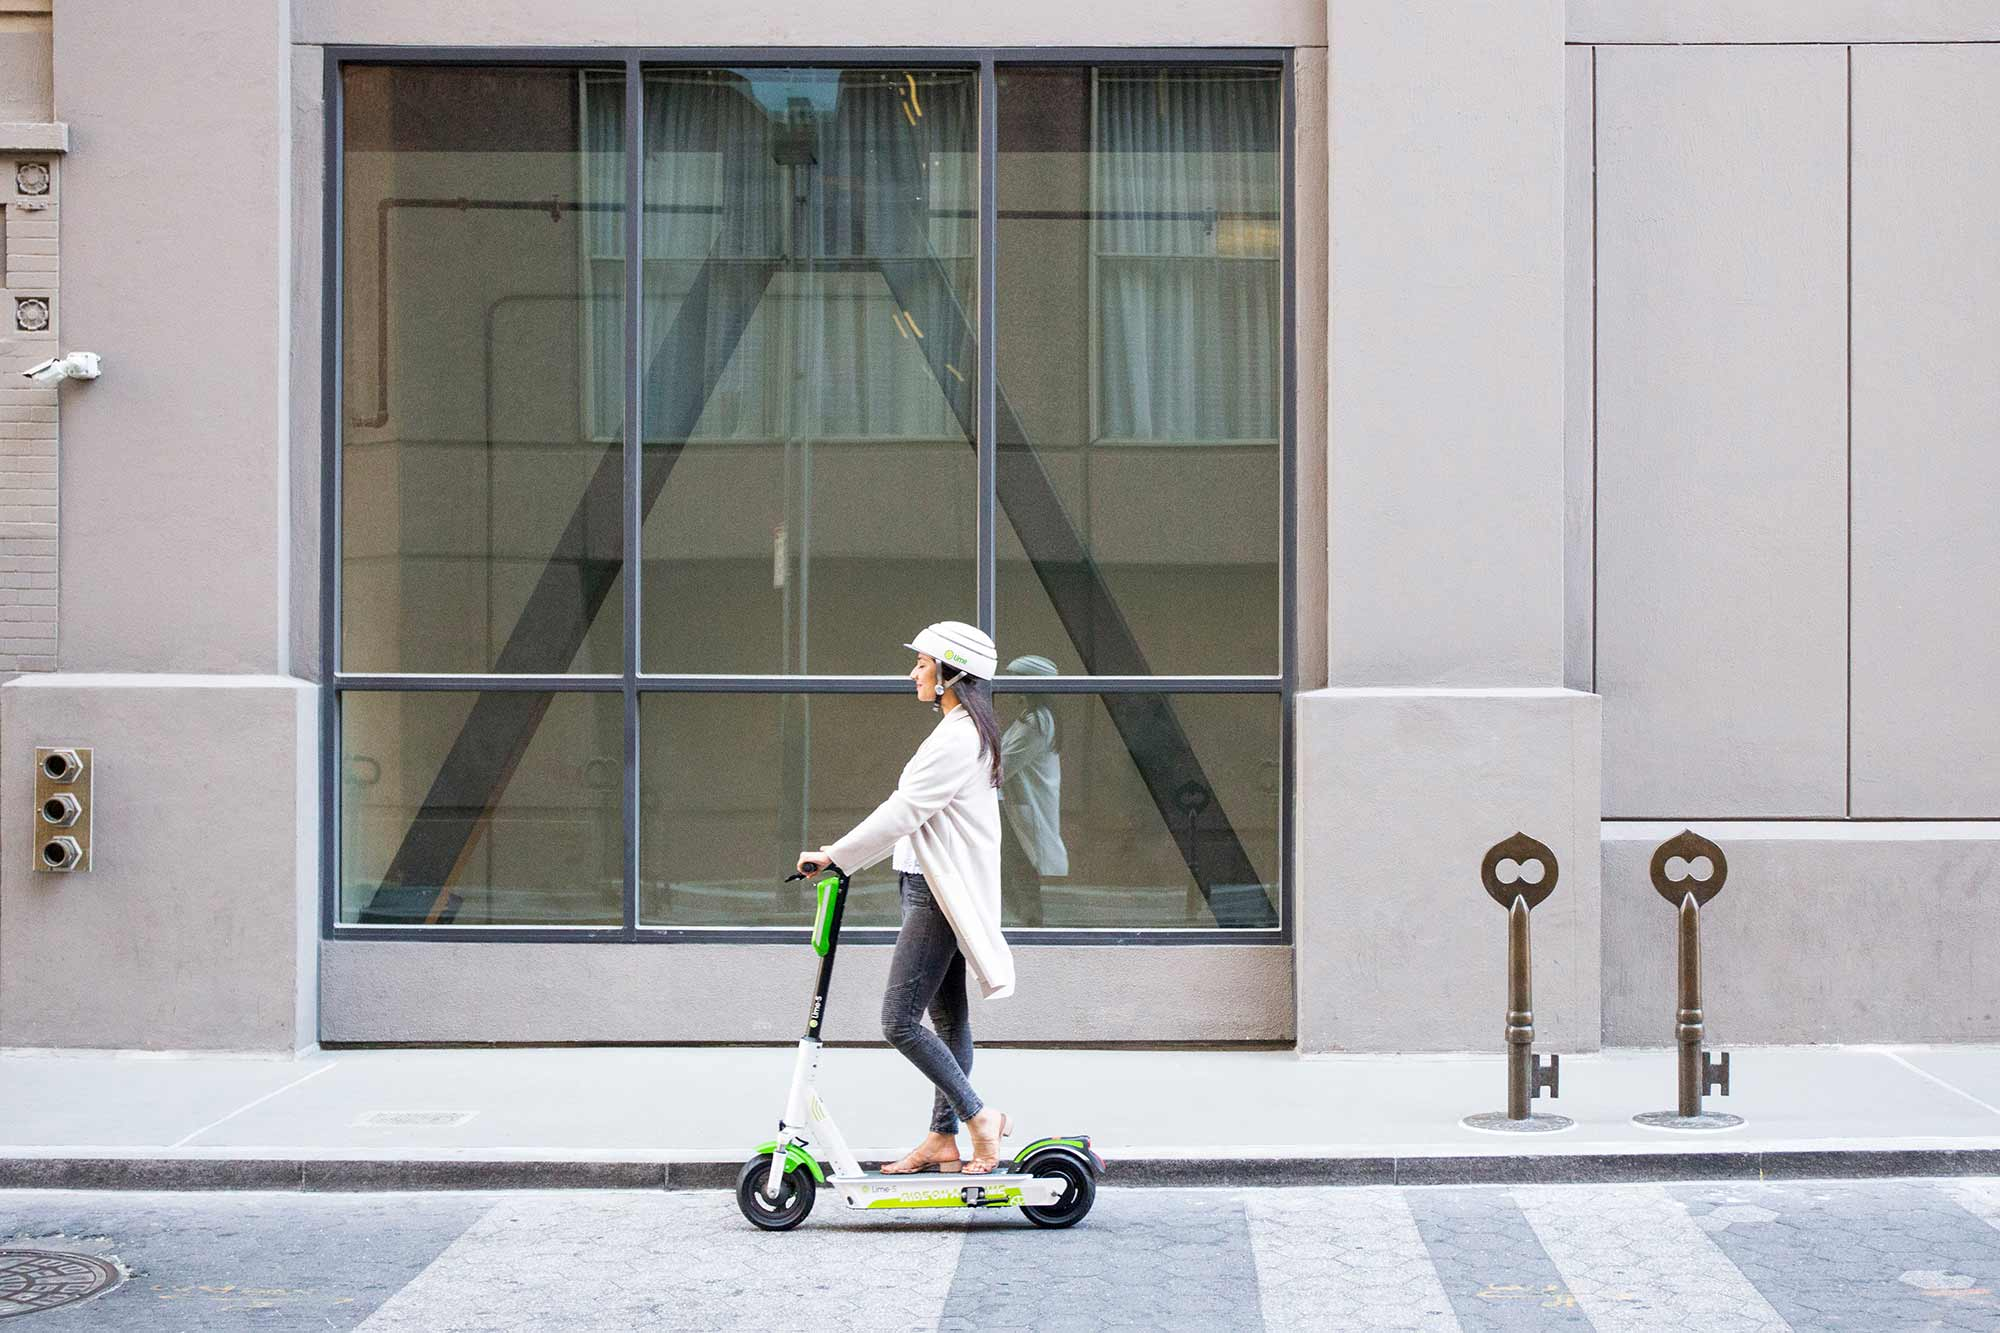 Lime partially suspends its scooter service due to coronavirus